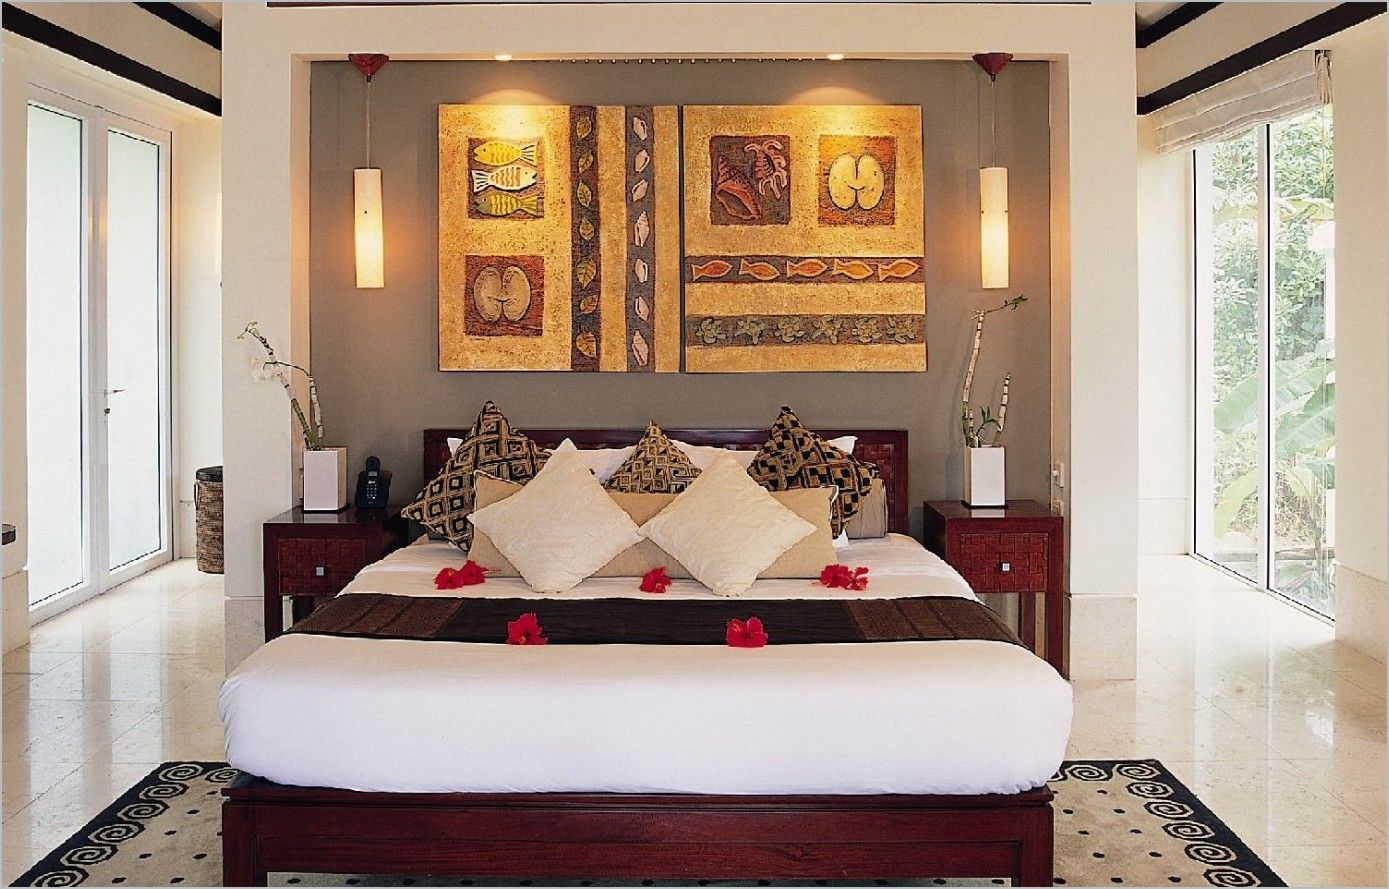 Interior Designs For Bedrooms Indian Style Extraordinary Modern Mediterranean Bedroom Calgary Interior Design Ideas For Review